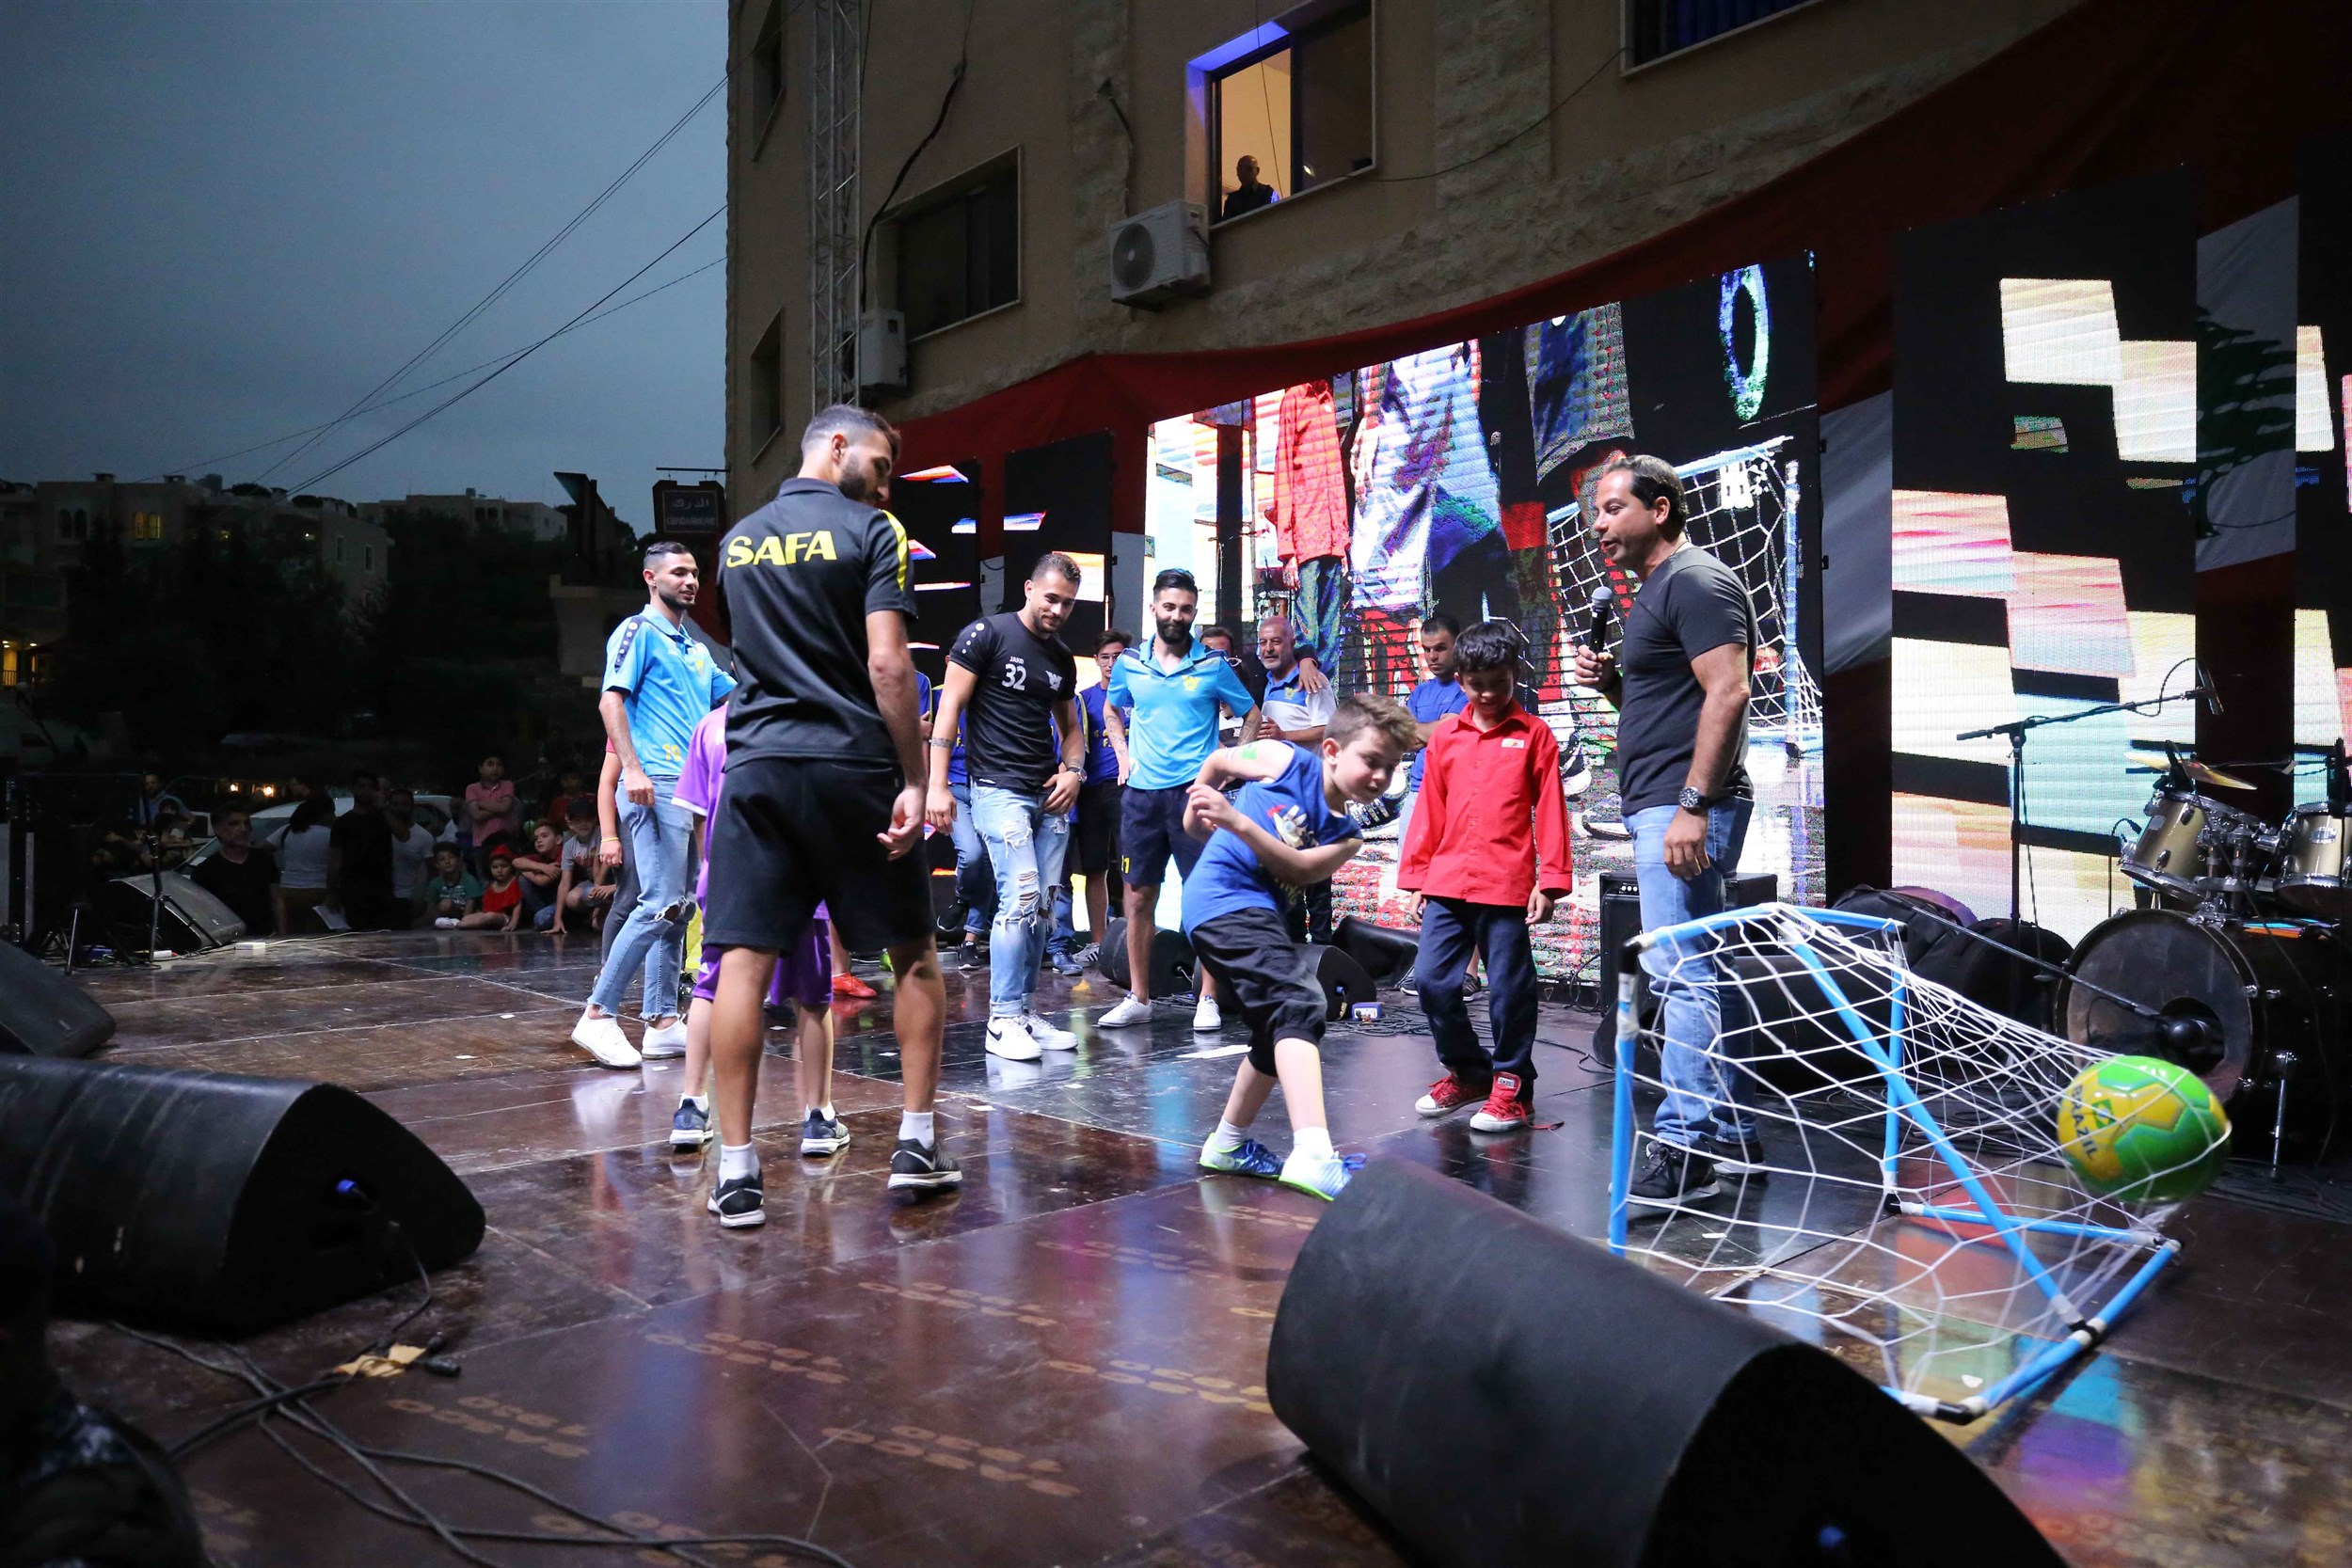 """the football team """"safa"""" and host michel azzi enjoying a friendly game with the audience."""